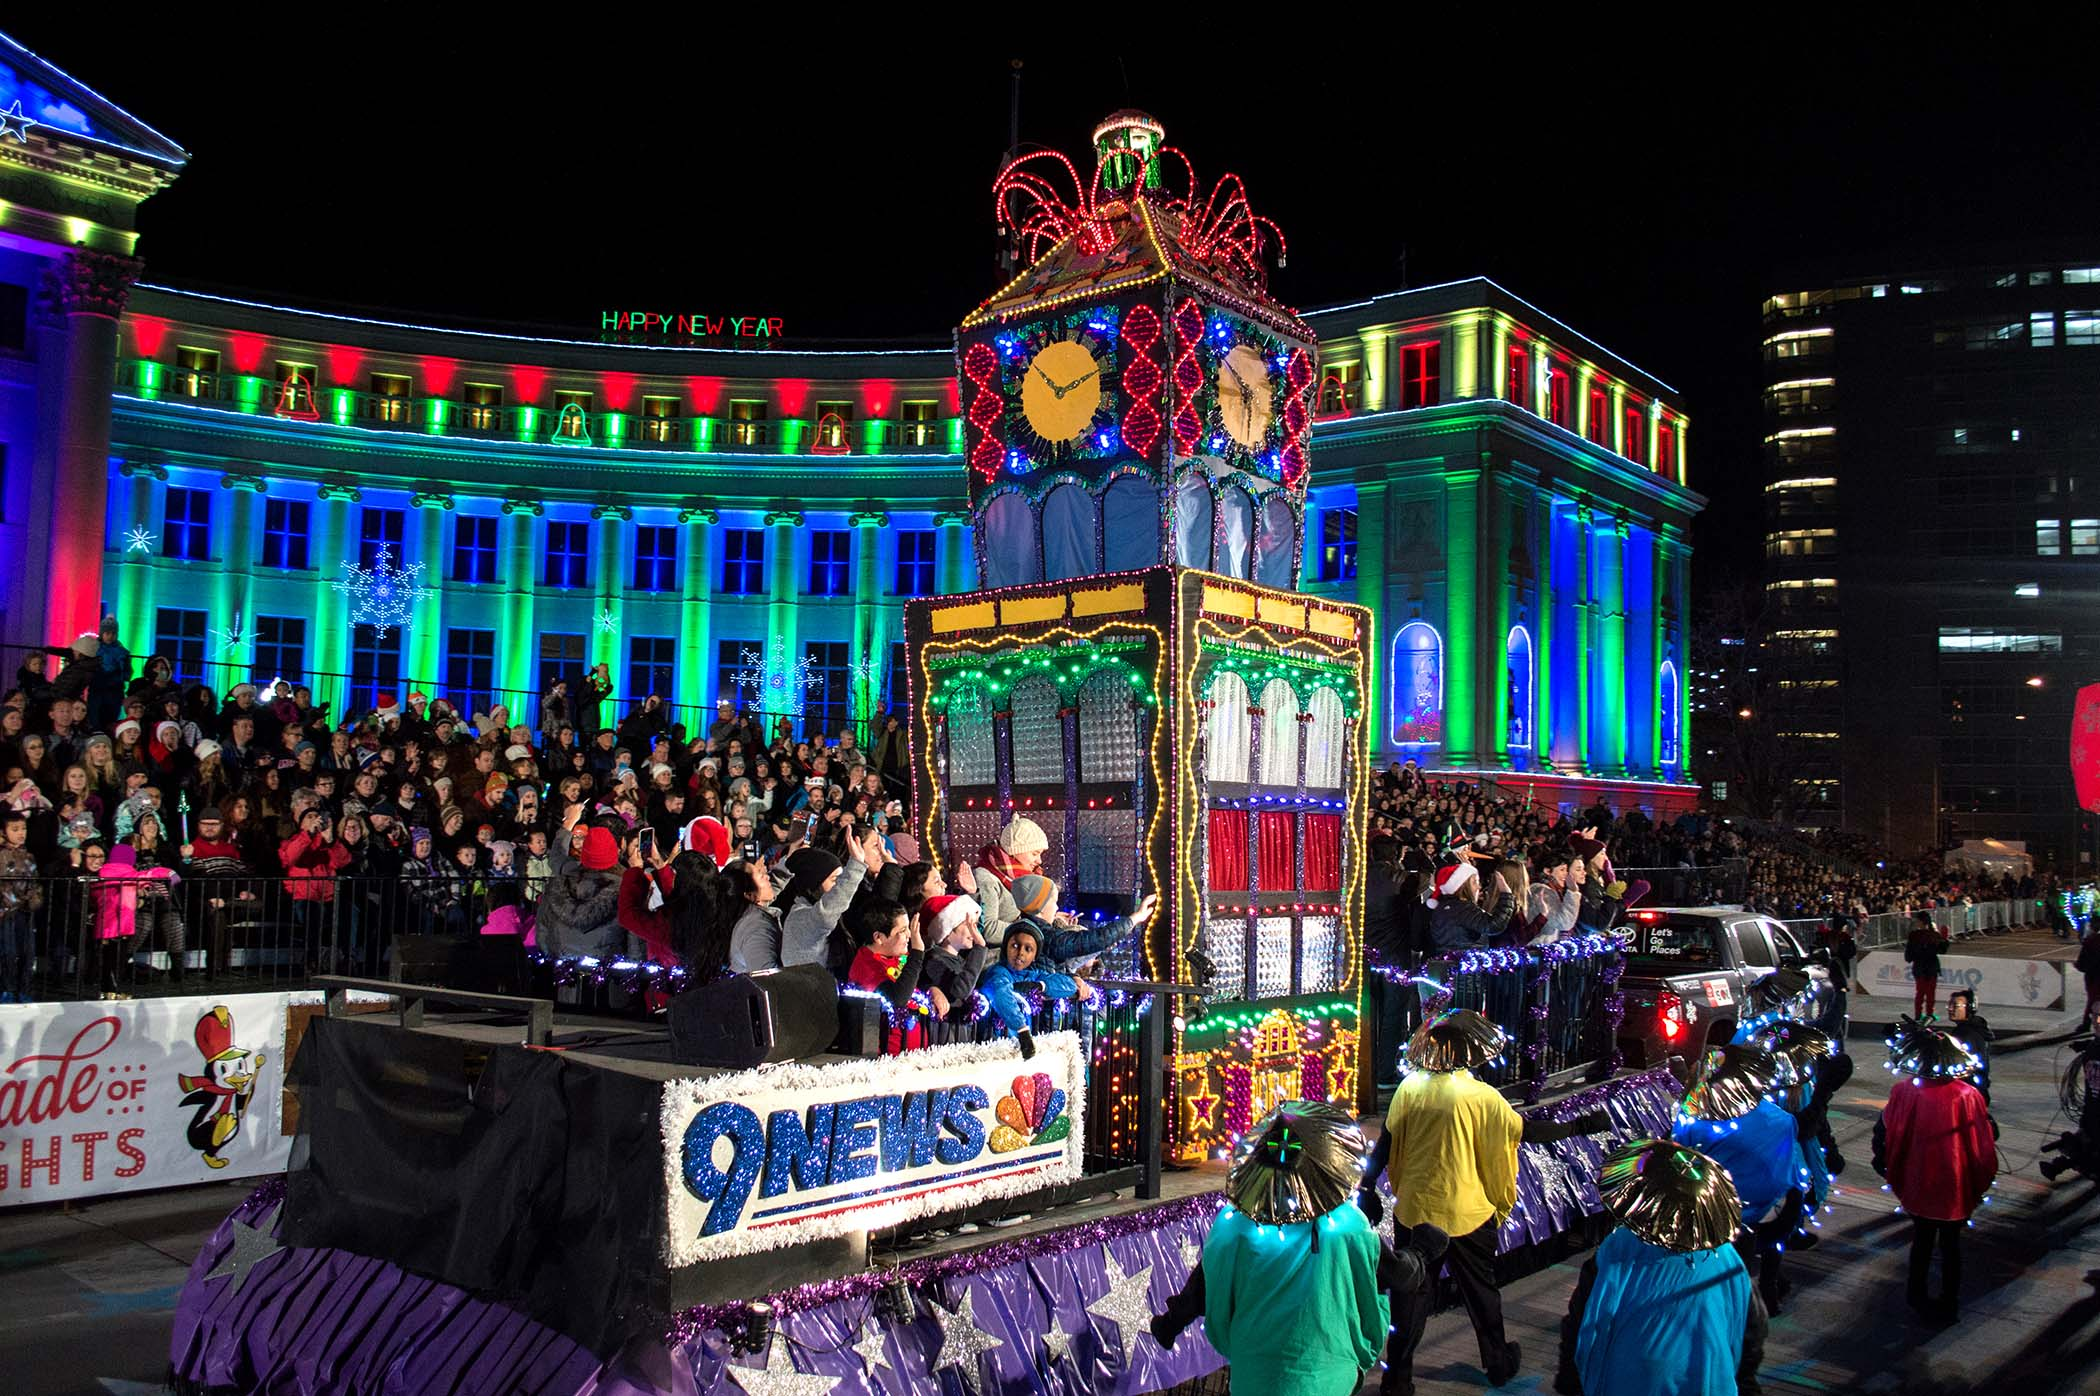 9NEWS Parade of Lights – Downtown